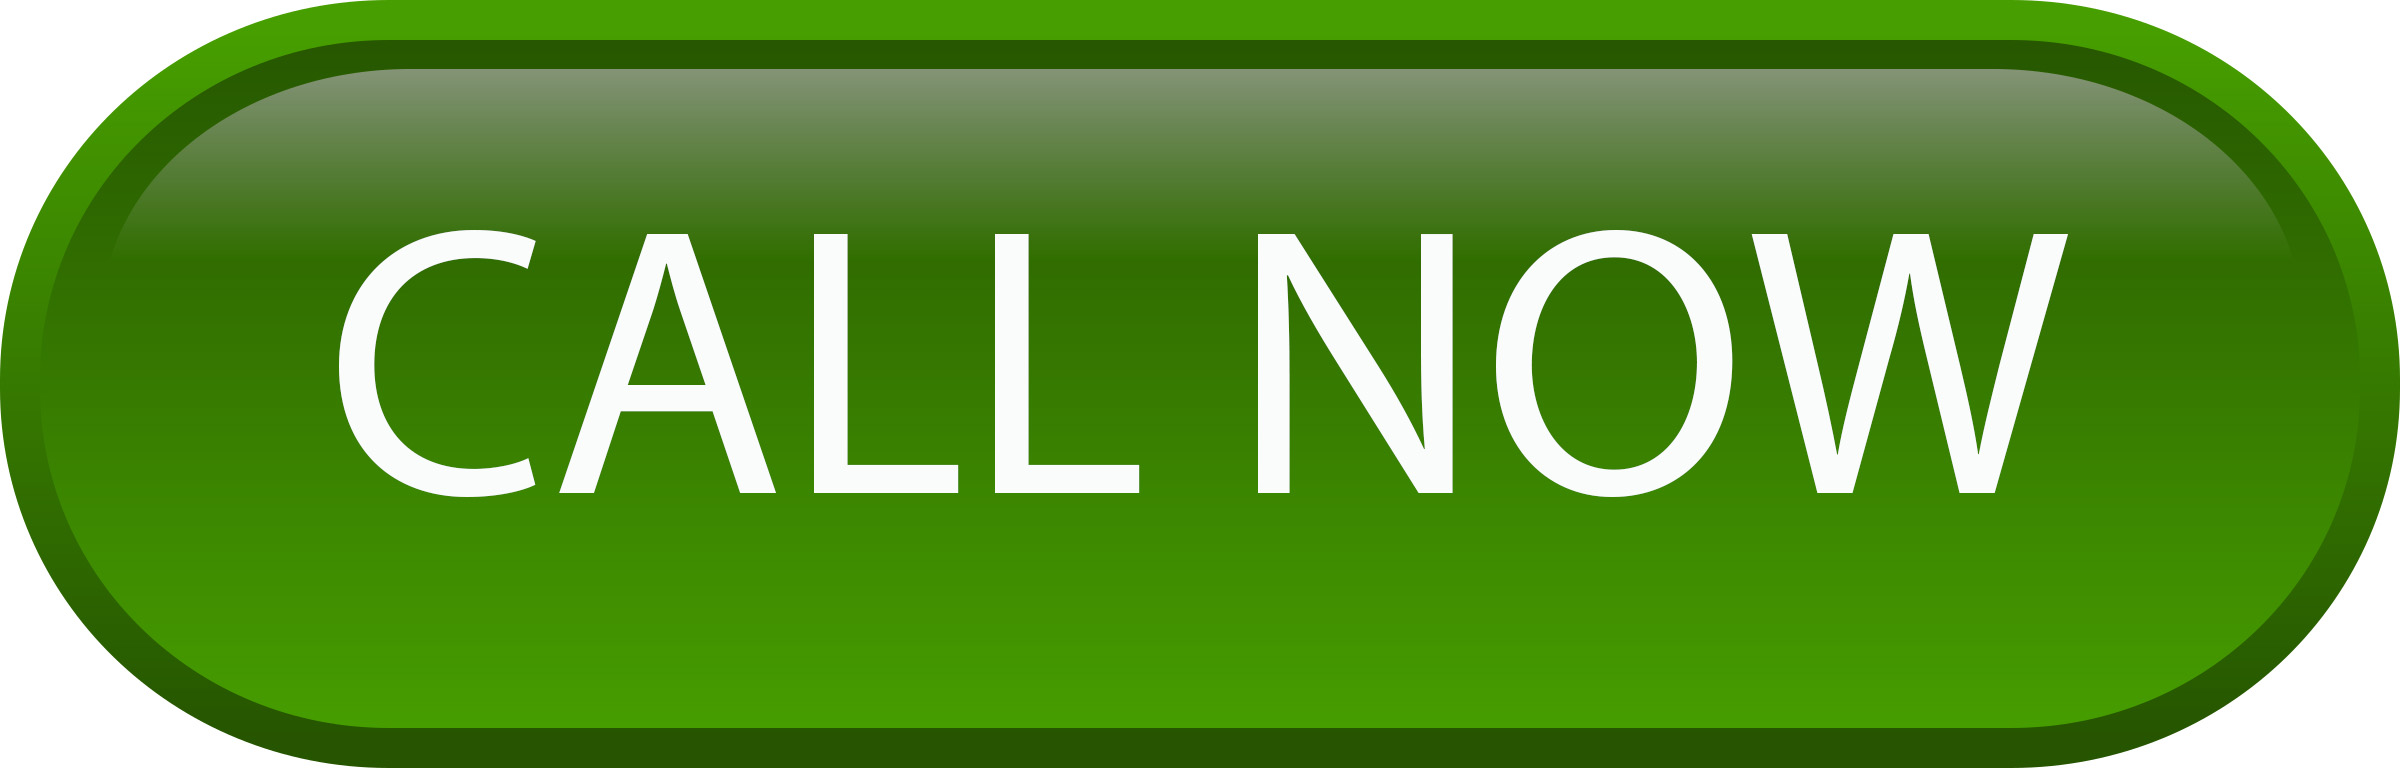 Image result for call now button green